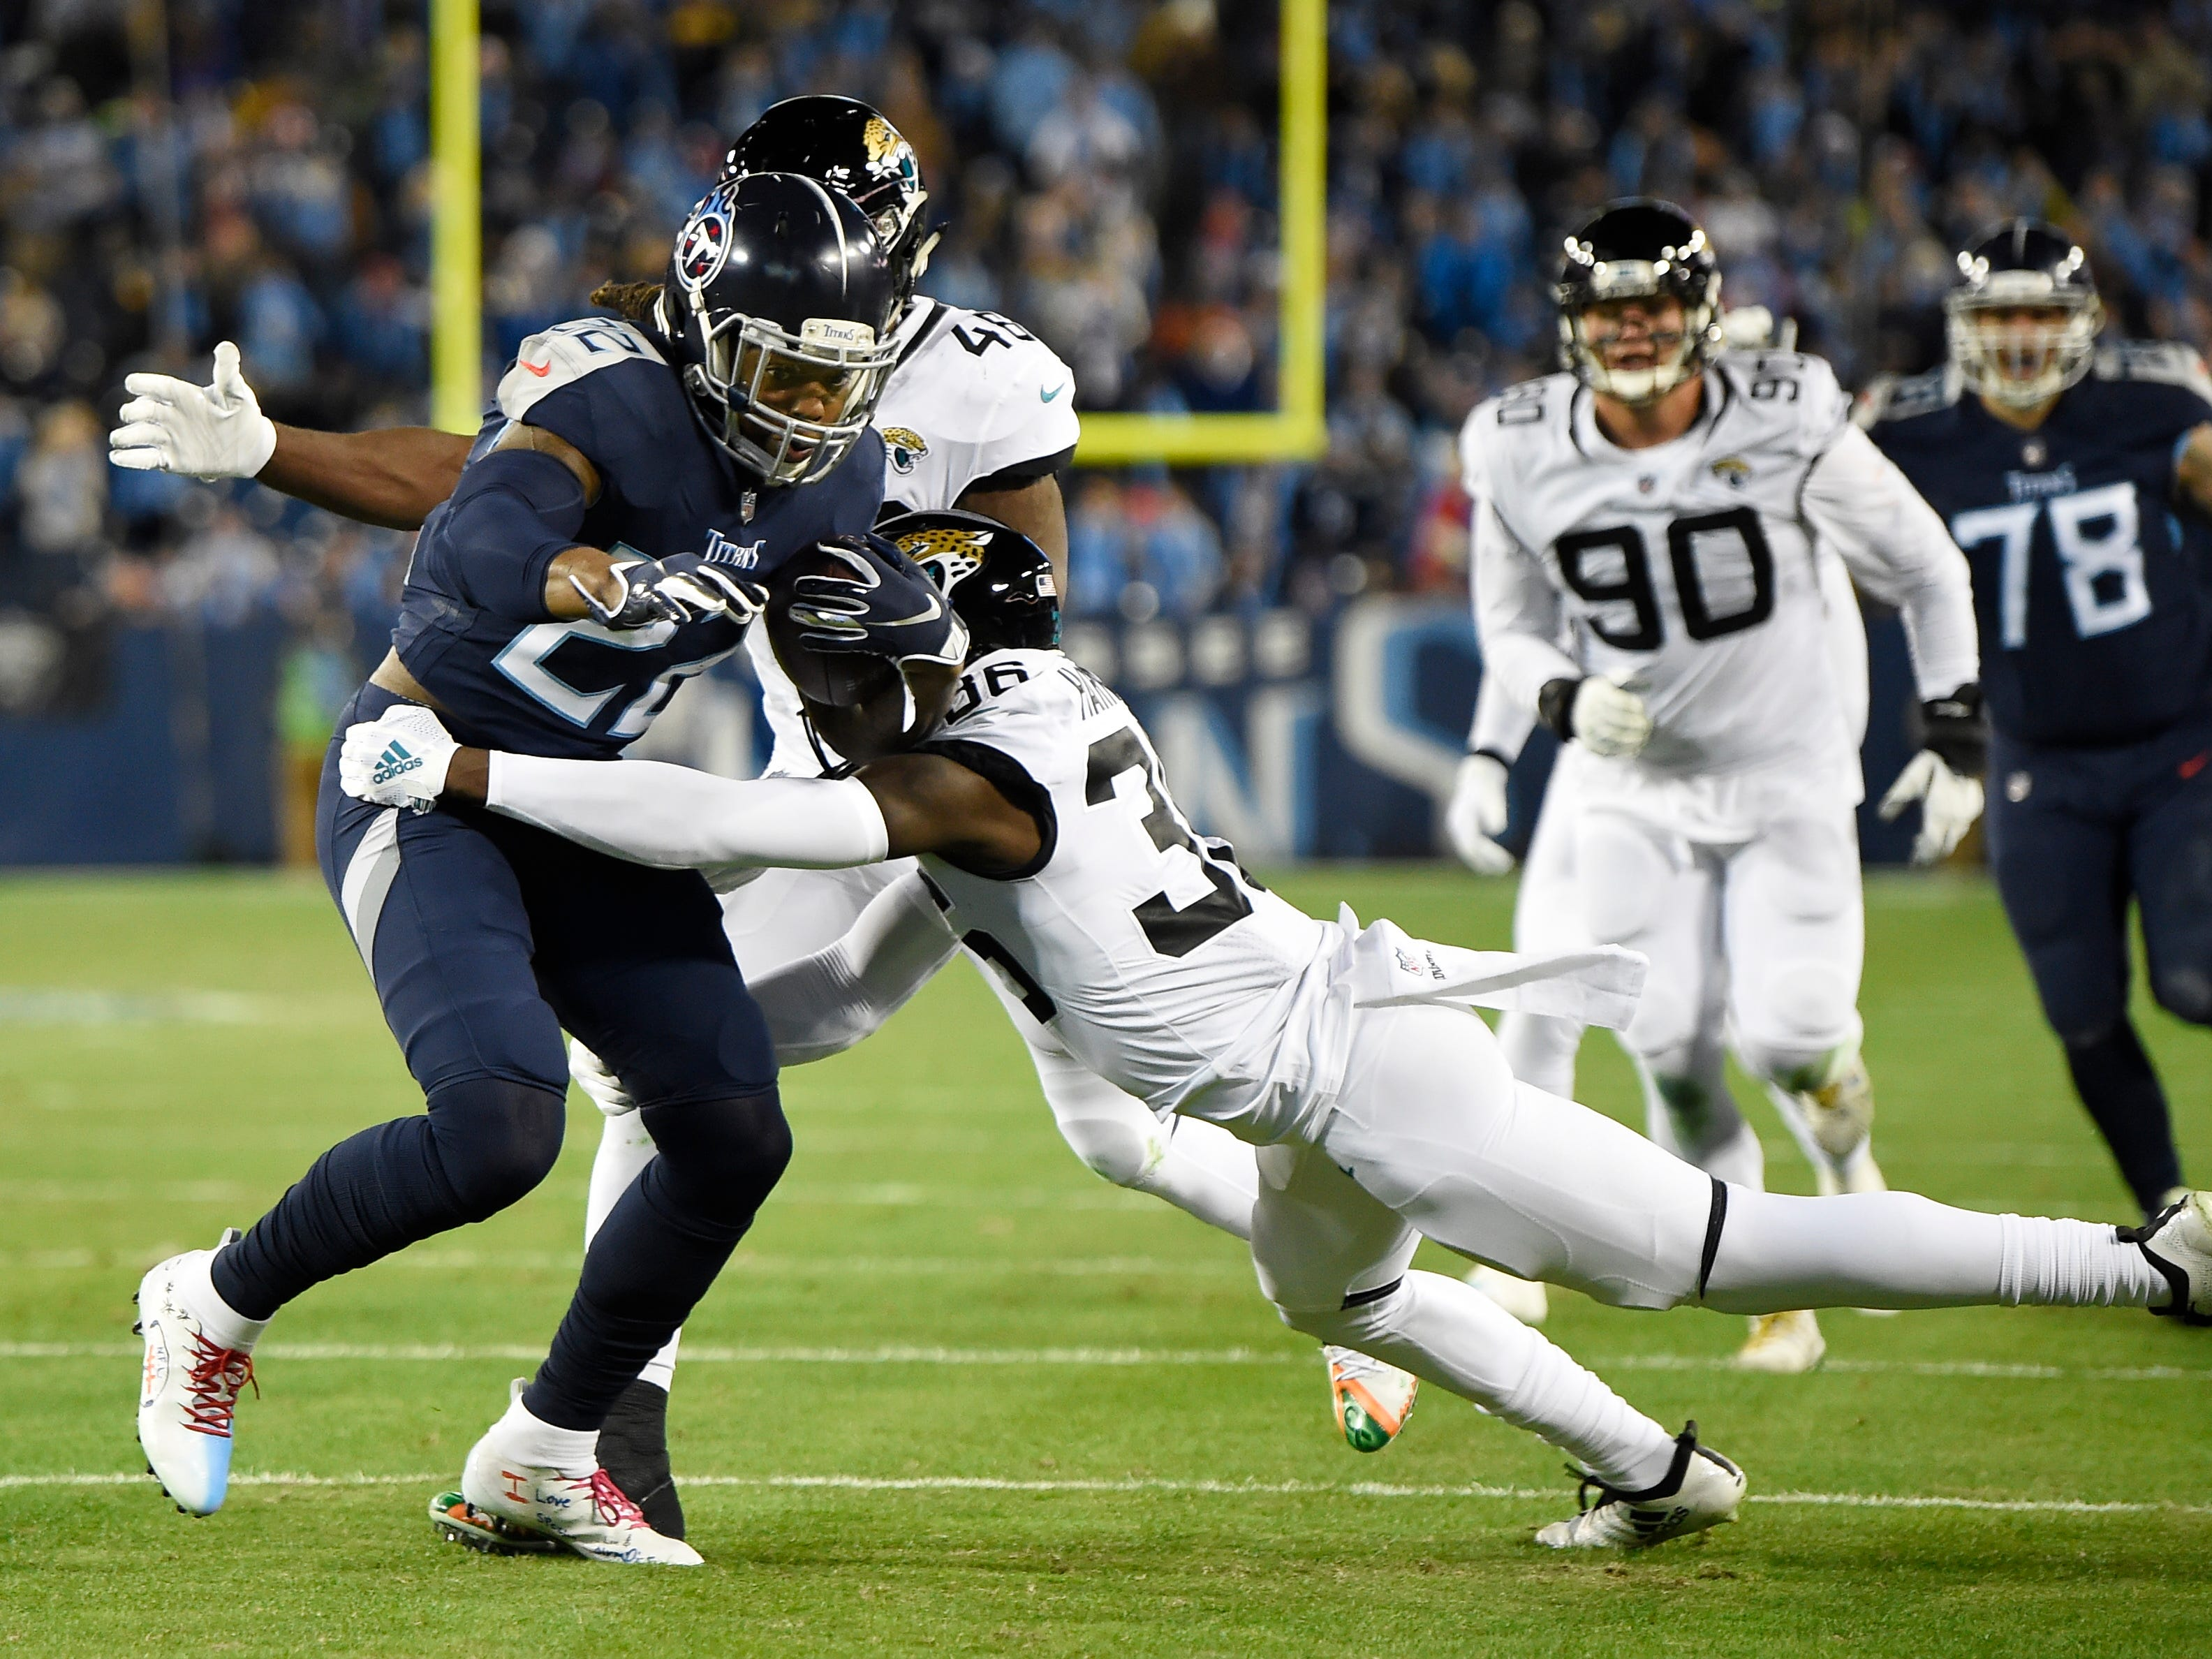 Titans running back Derrick Henry (22) rushes for a first down defended by Jaguars safety Ronnie Harrison (36) in the first quarter at Nissan Stadium Thursday, Dec. 6, 2018, in Nashville, Tenn.